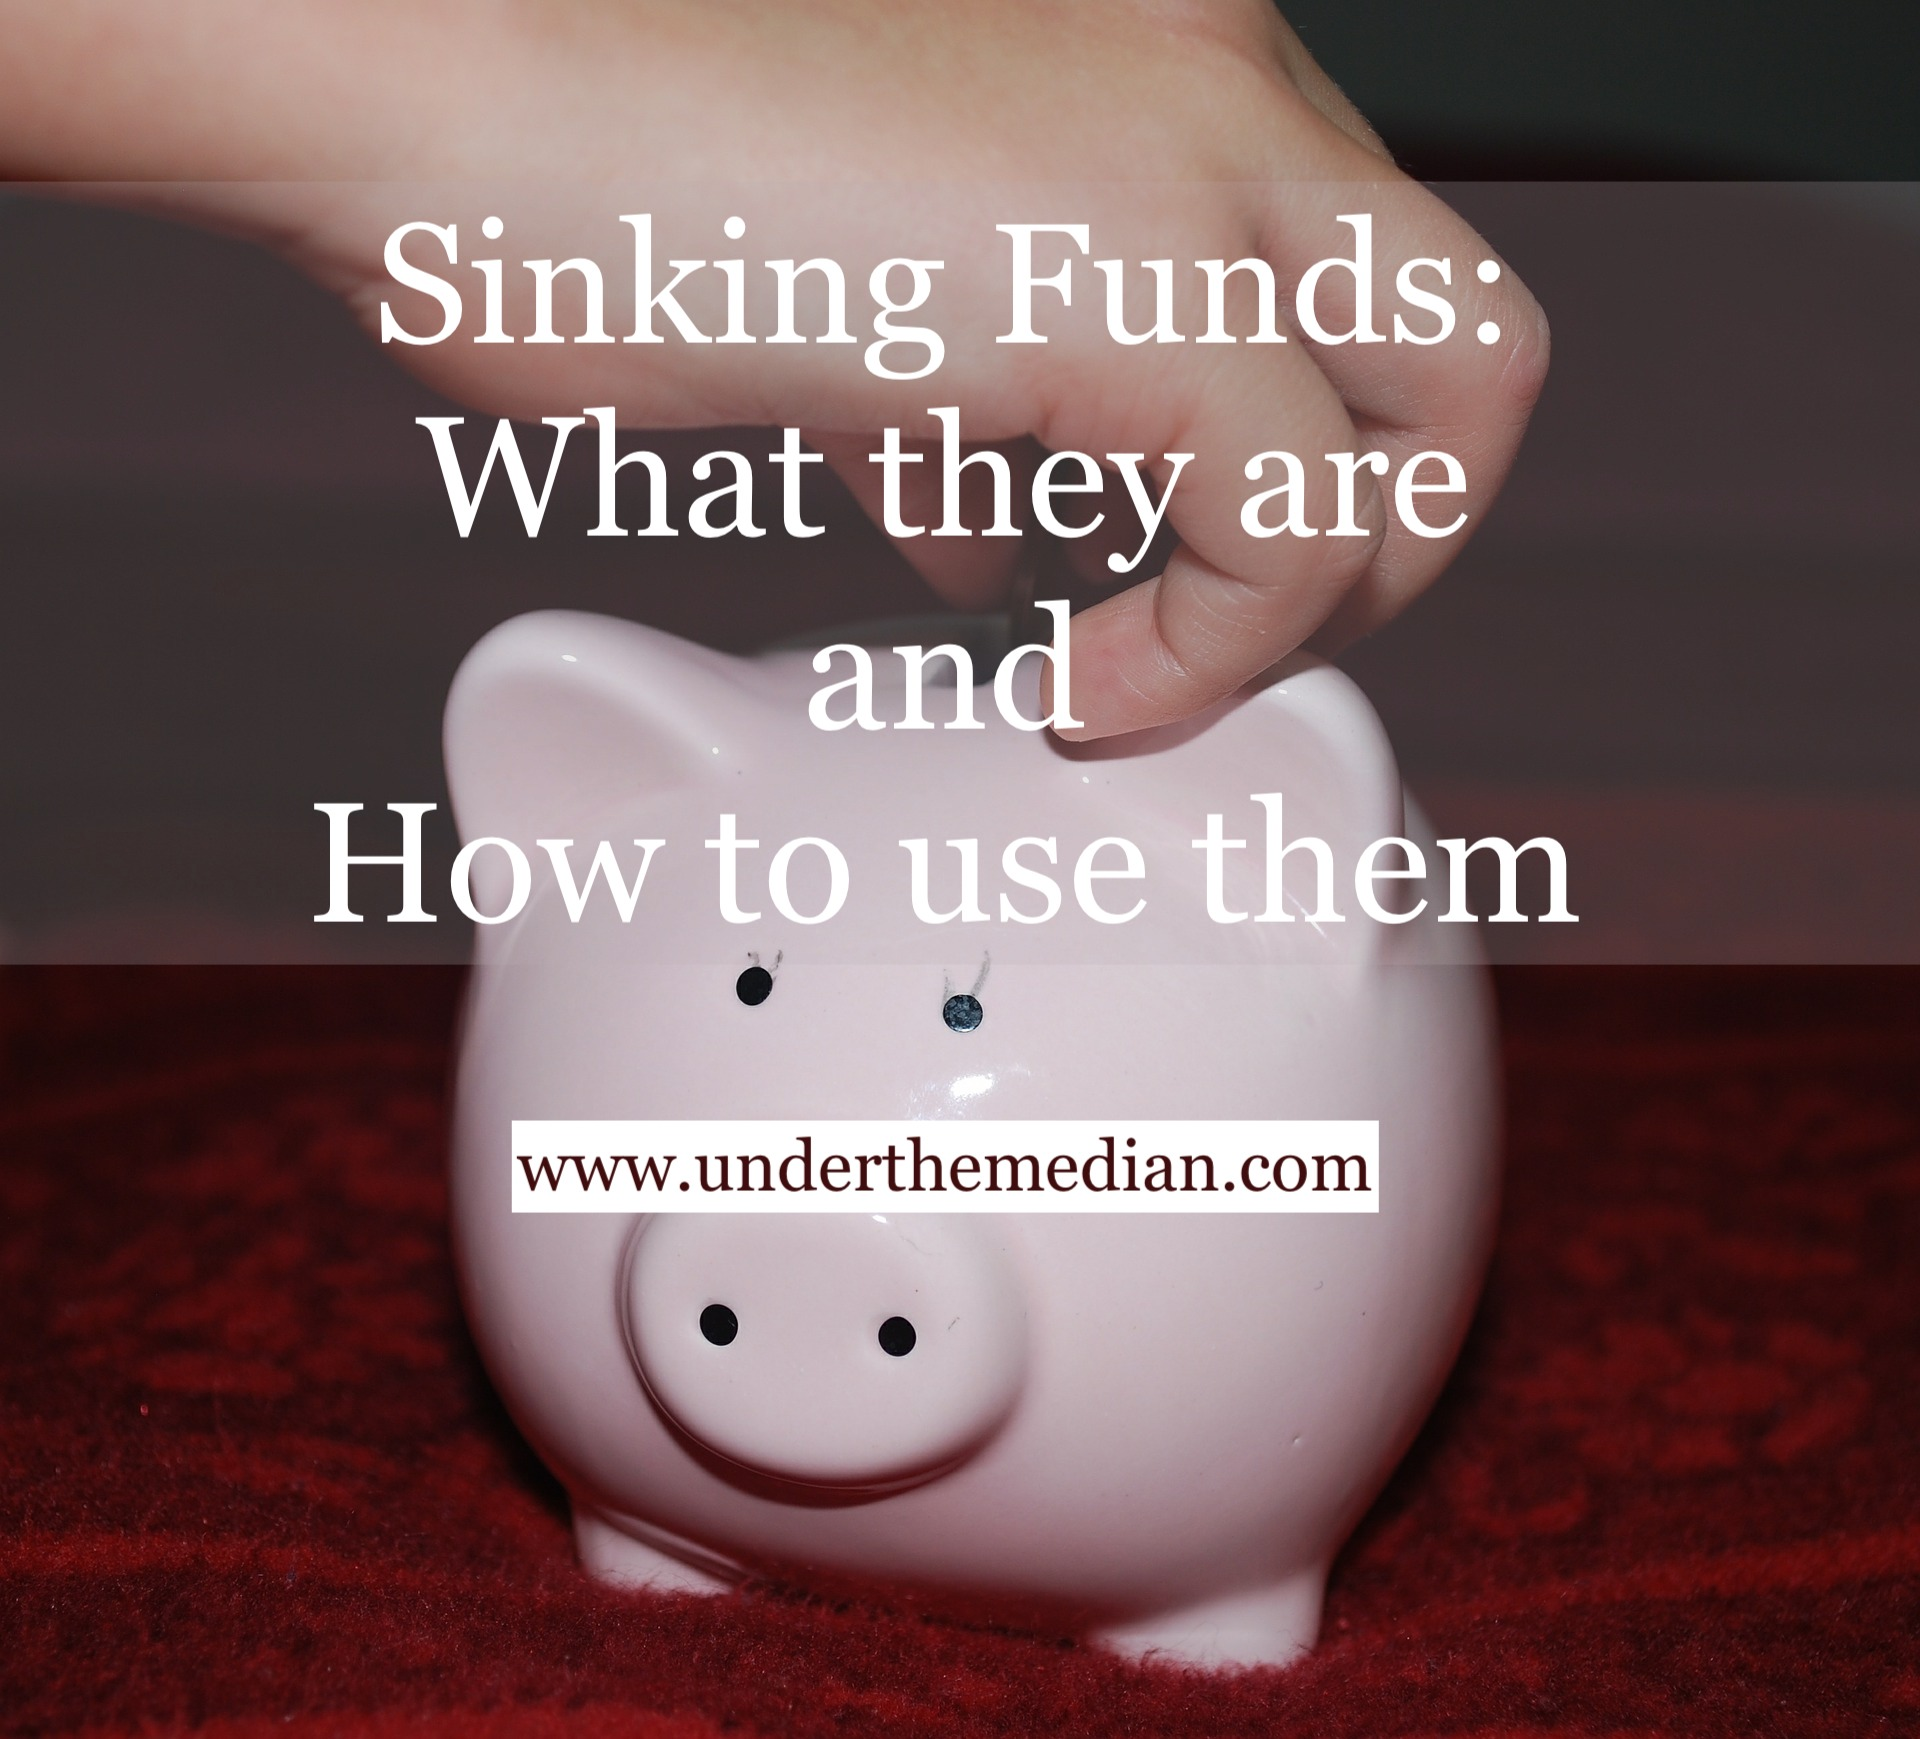 What are Sinking Funds and How Should I Use Them?